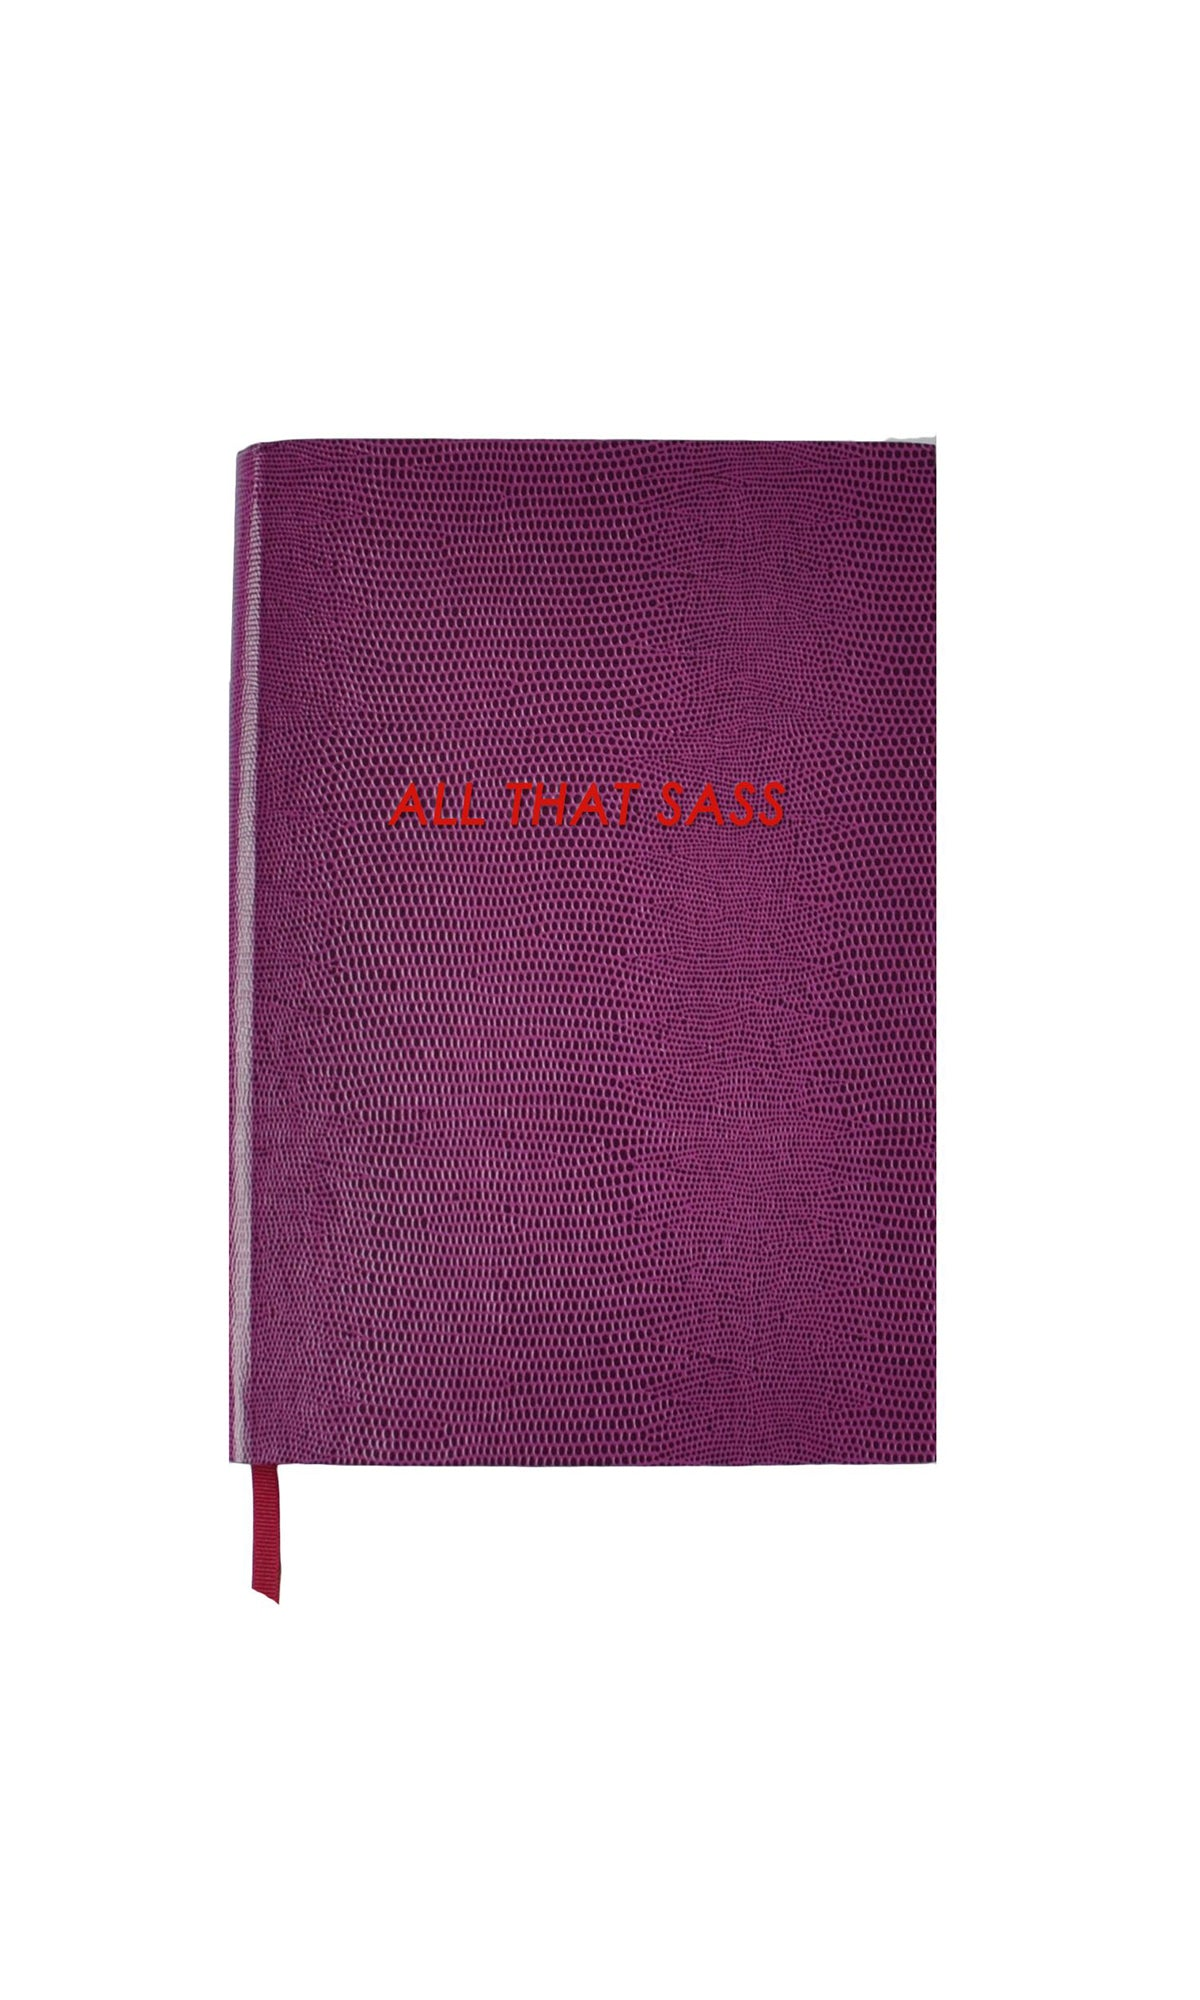 All That Sass Small Notebook